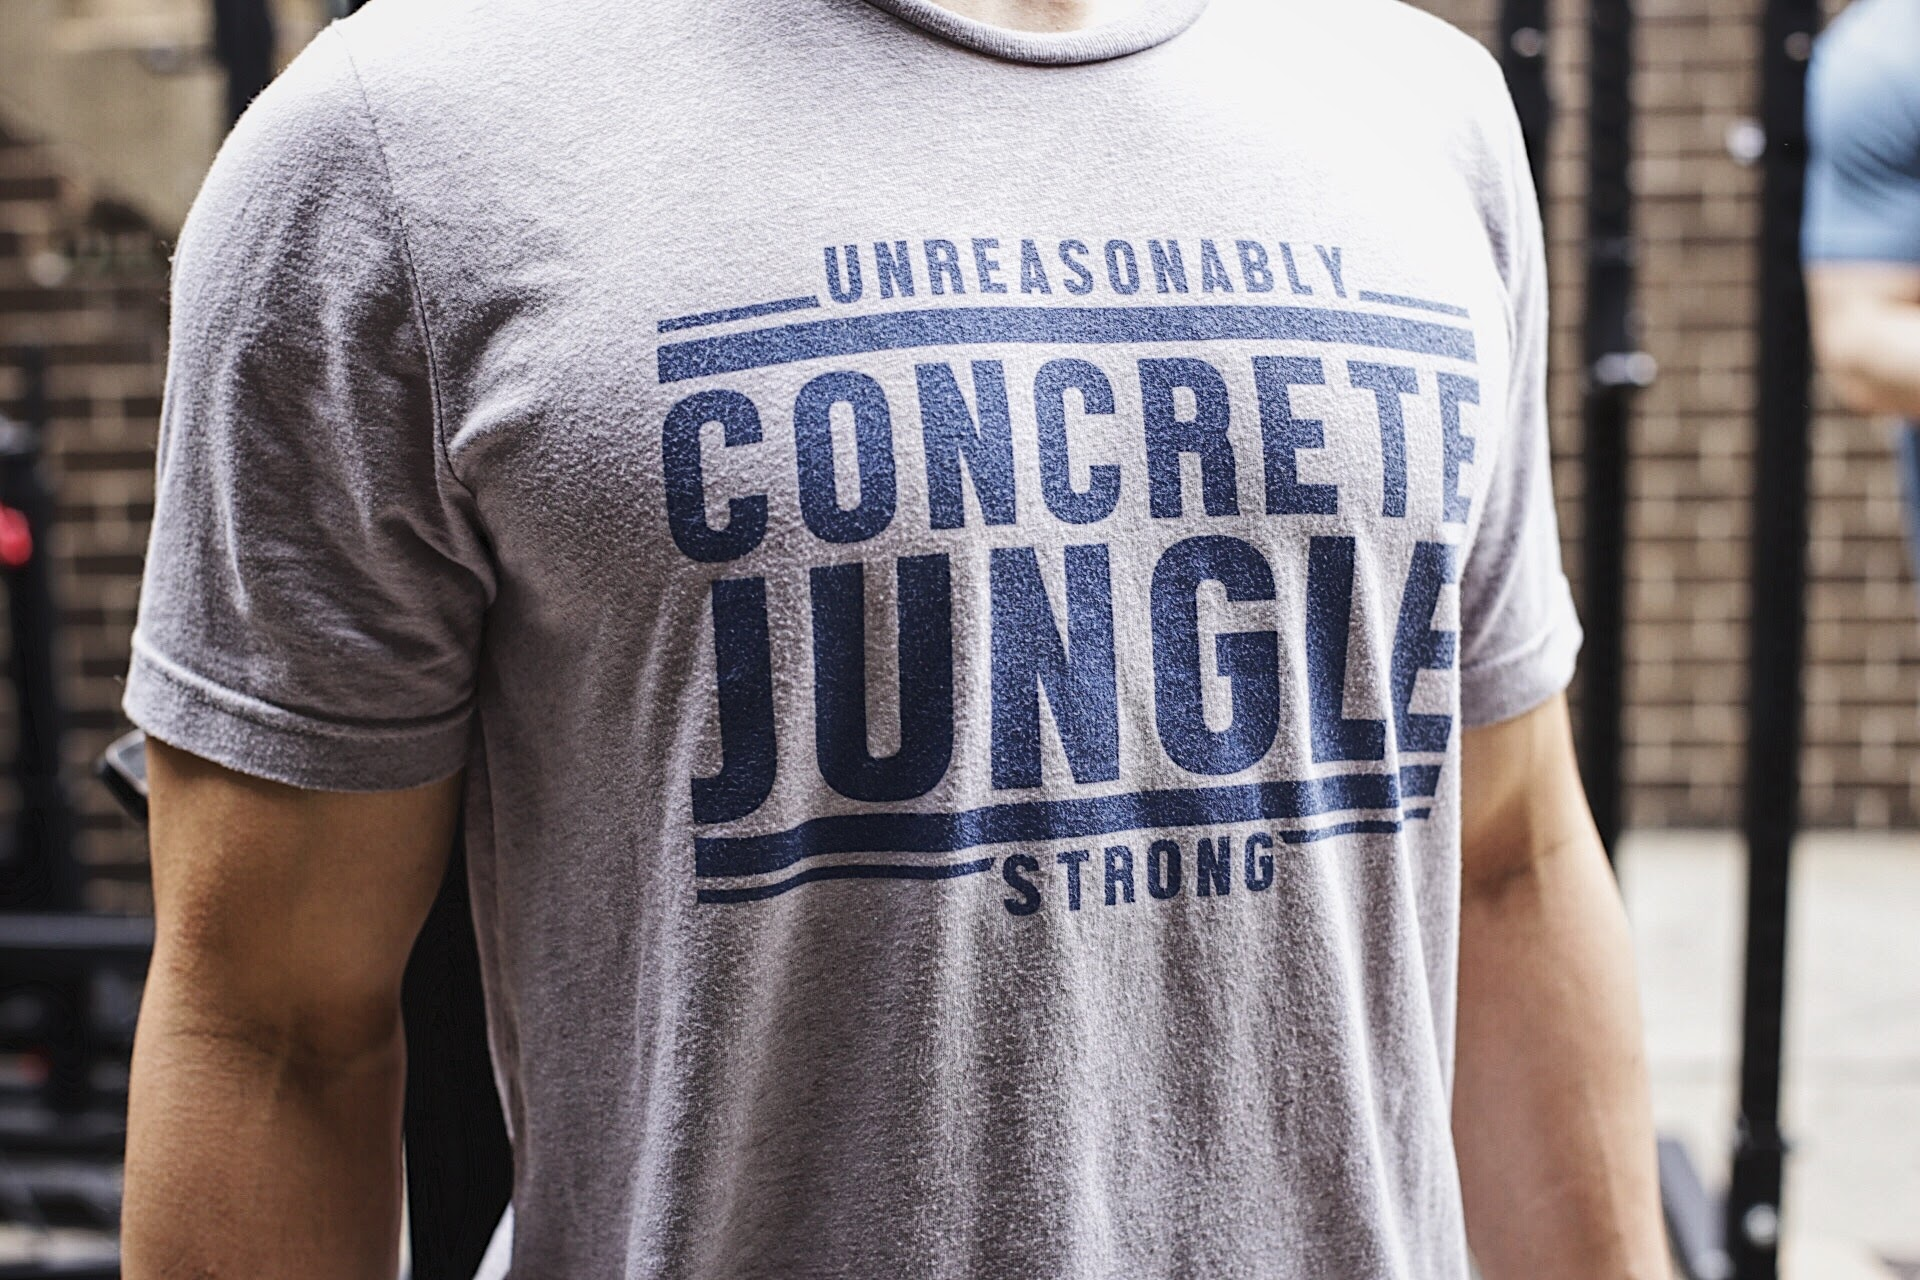 CrossFit Concrete Jungle Unreasonably Strong Tees